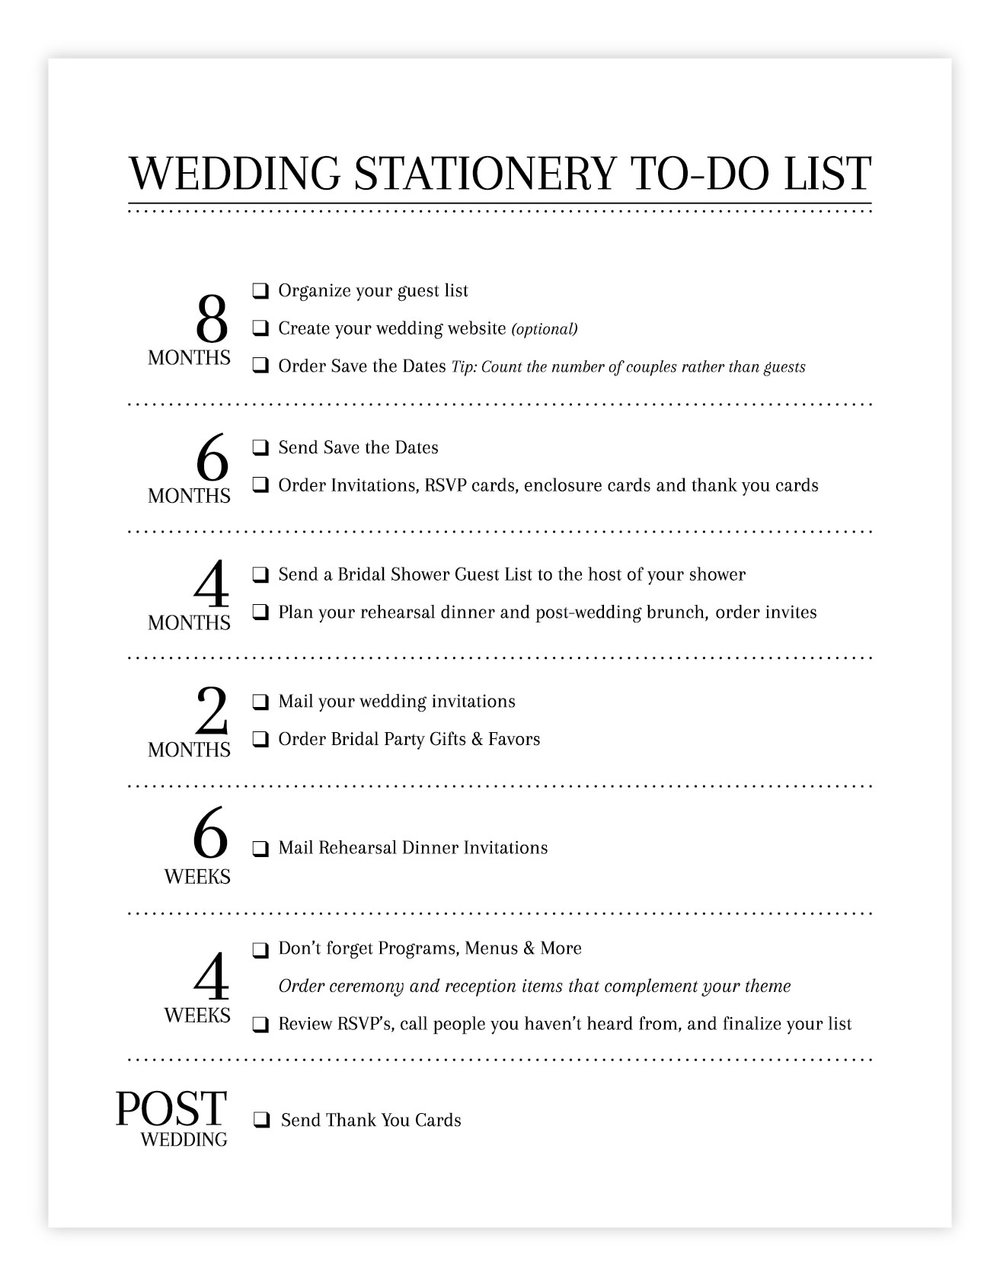 Wedding Stationary To-Do List-01.jpg